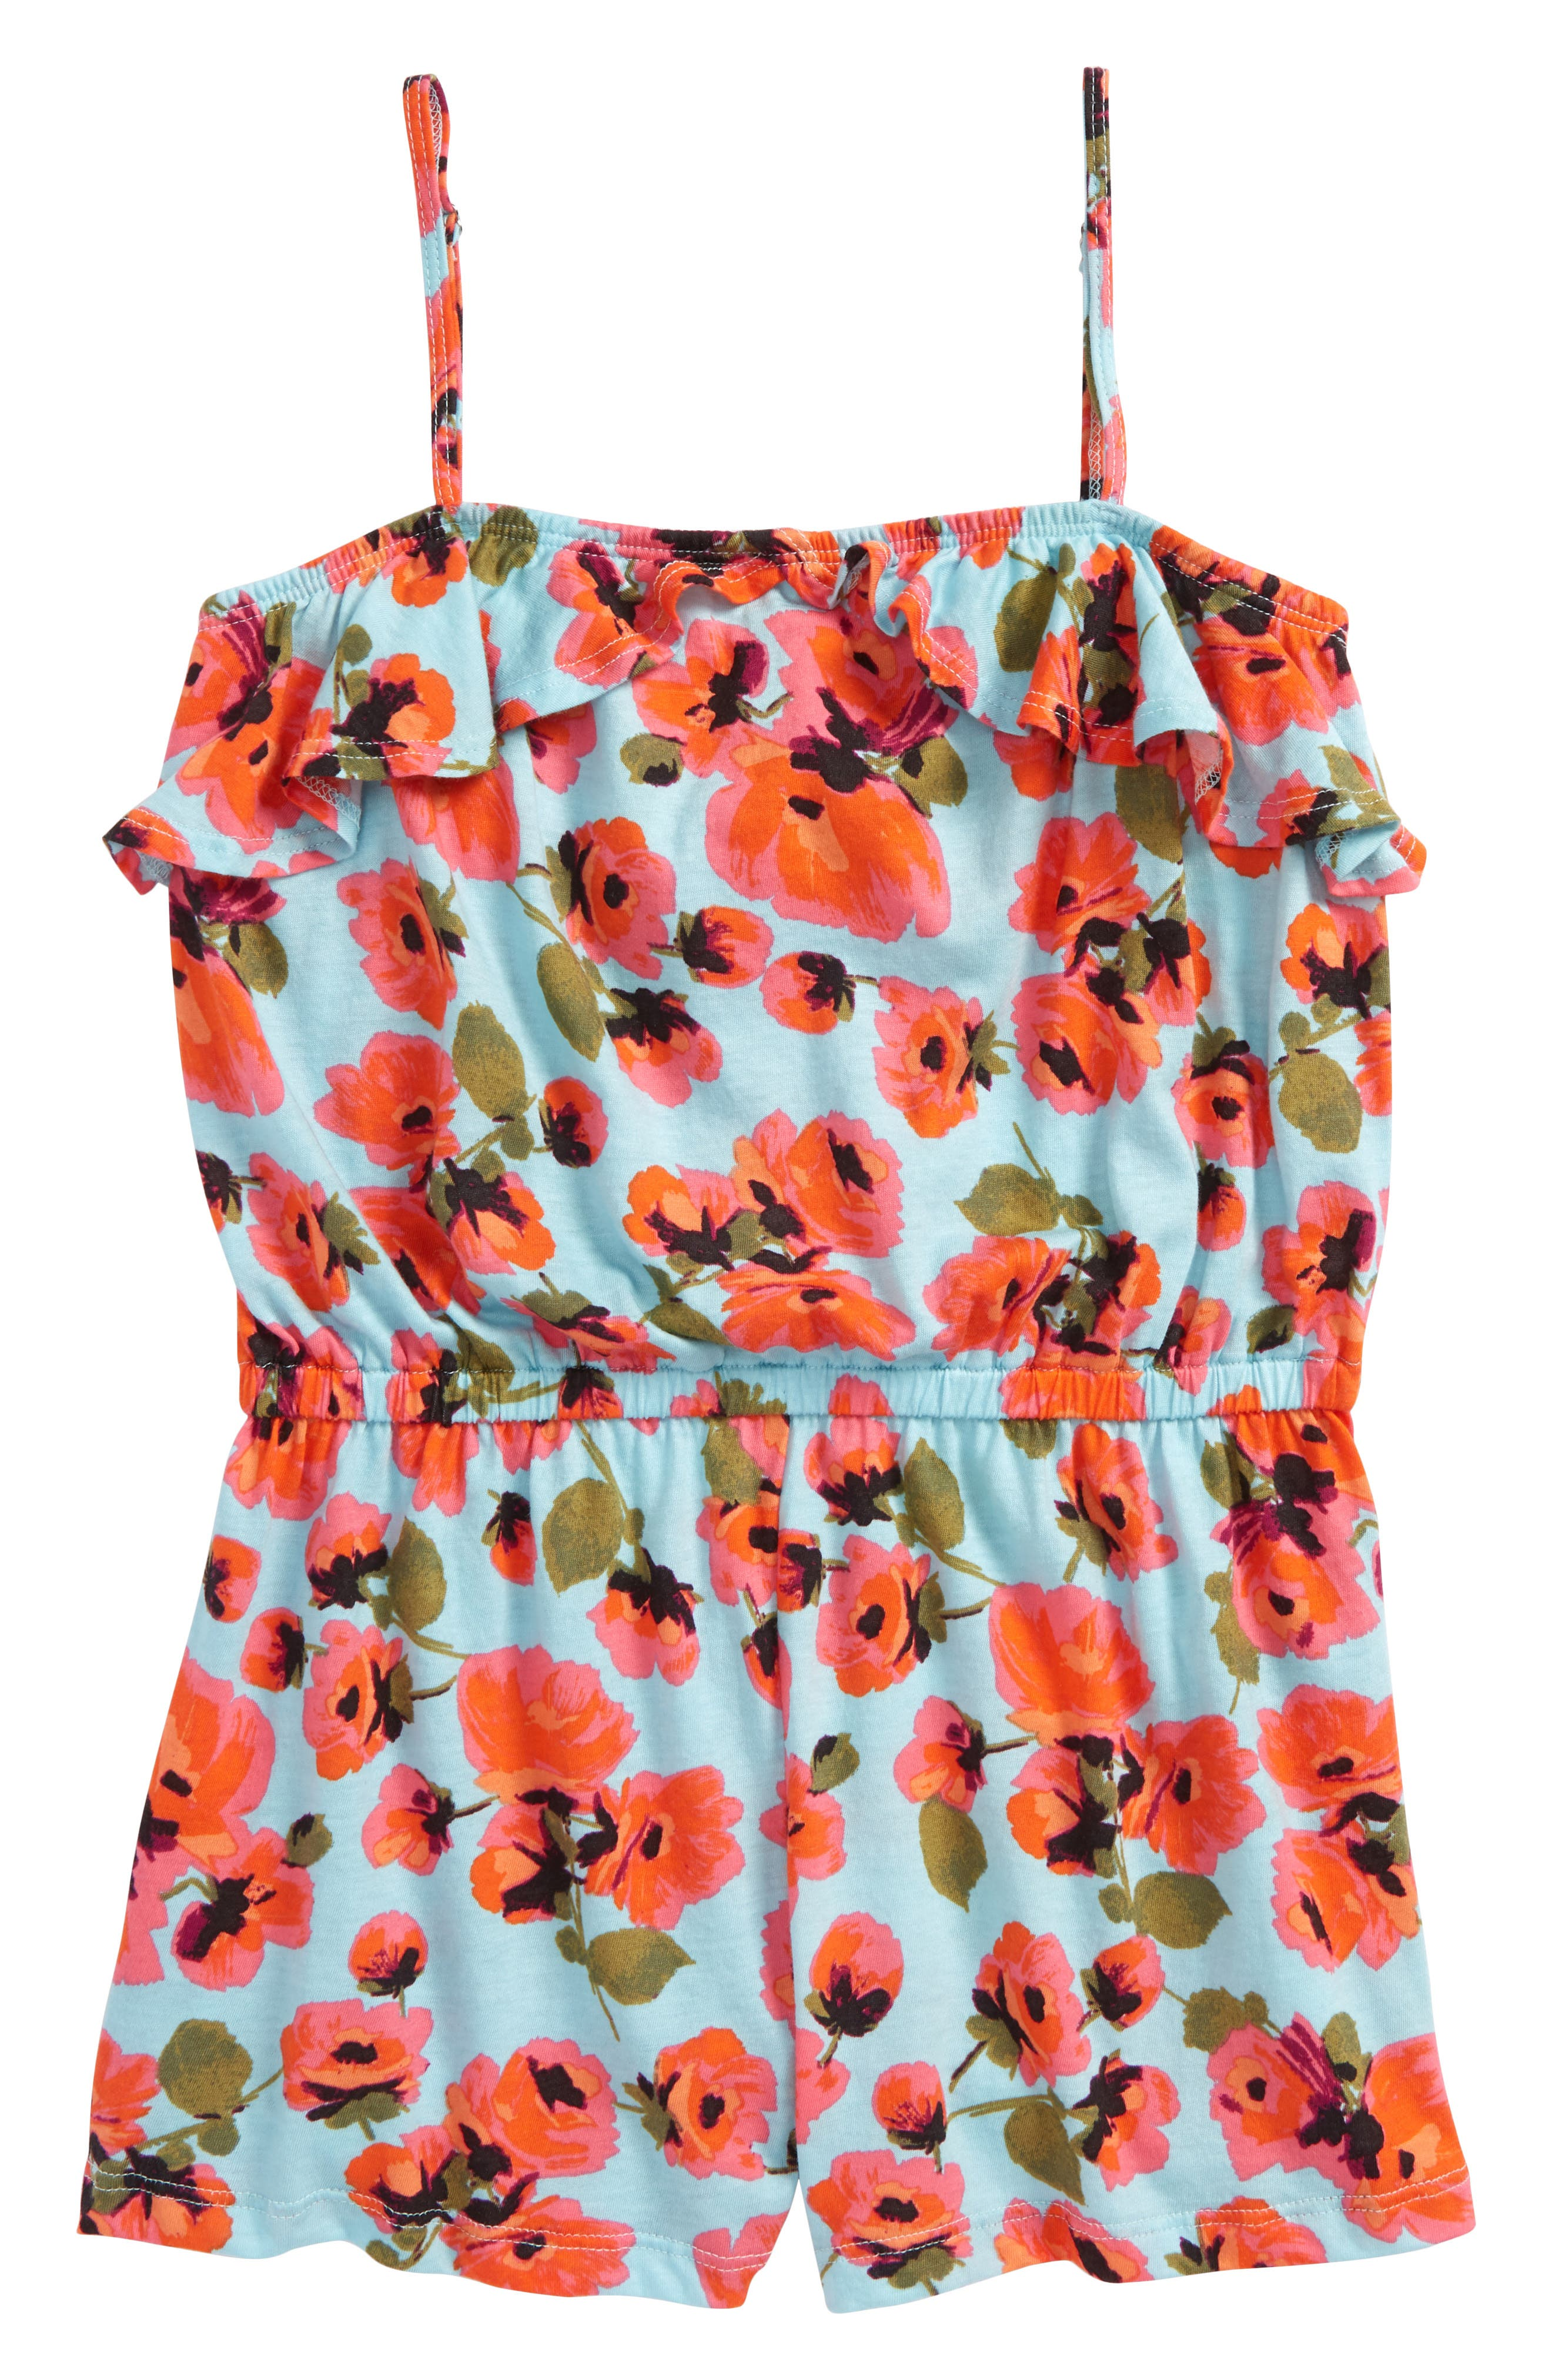 Play Time Romper,                             Main thumbnail 1, color,                             414